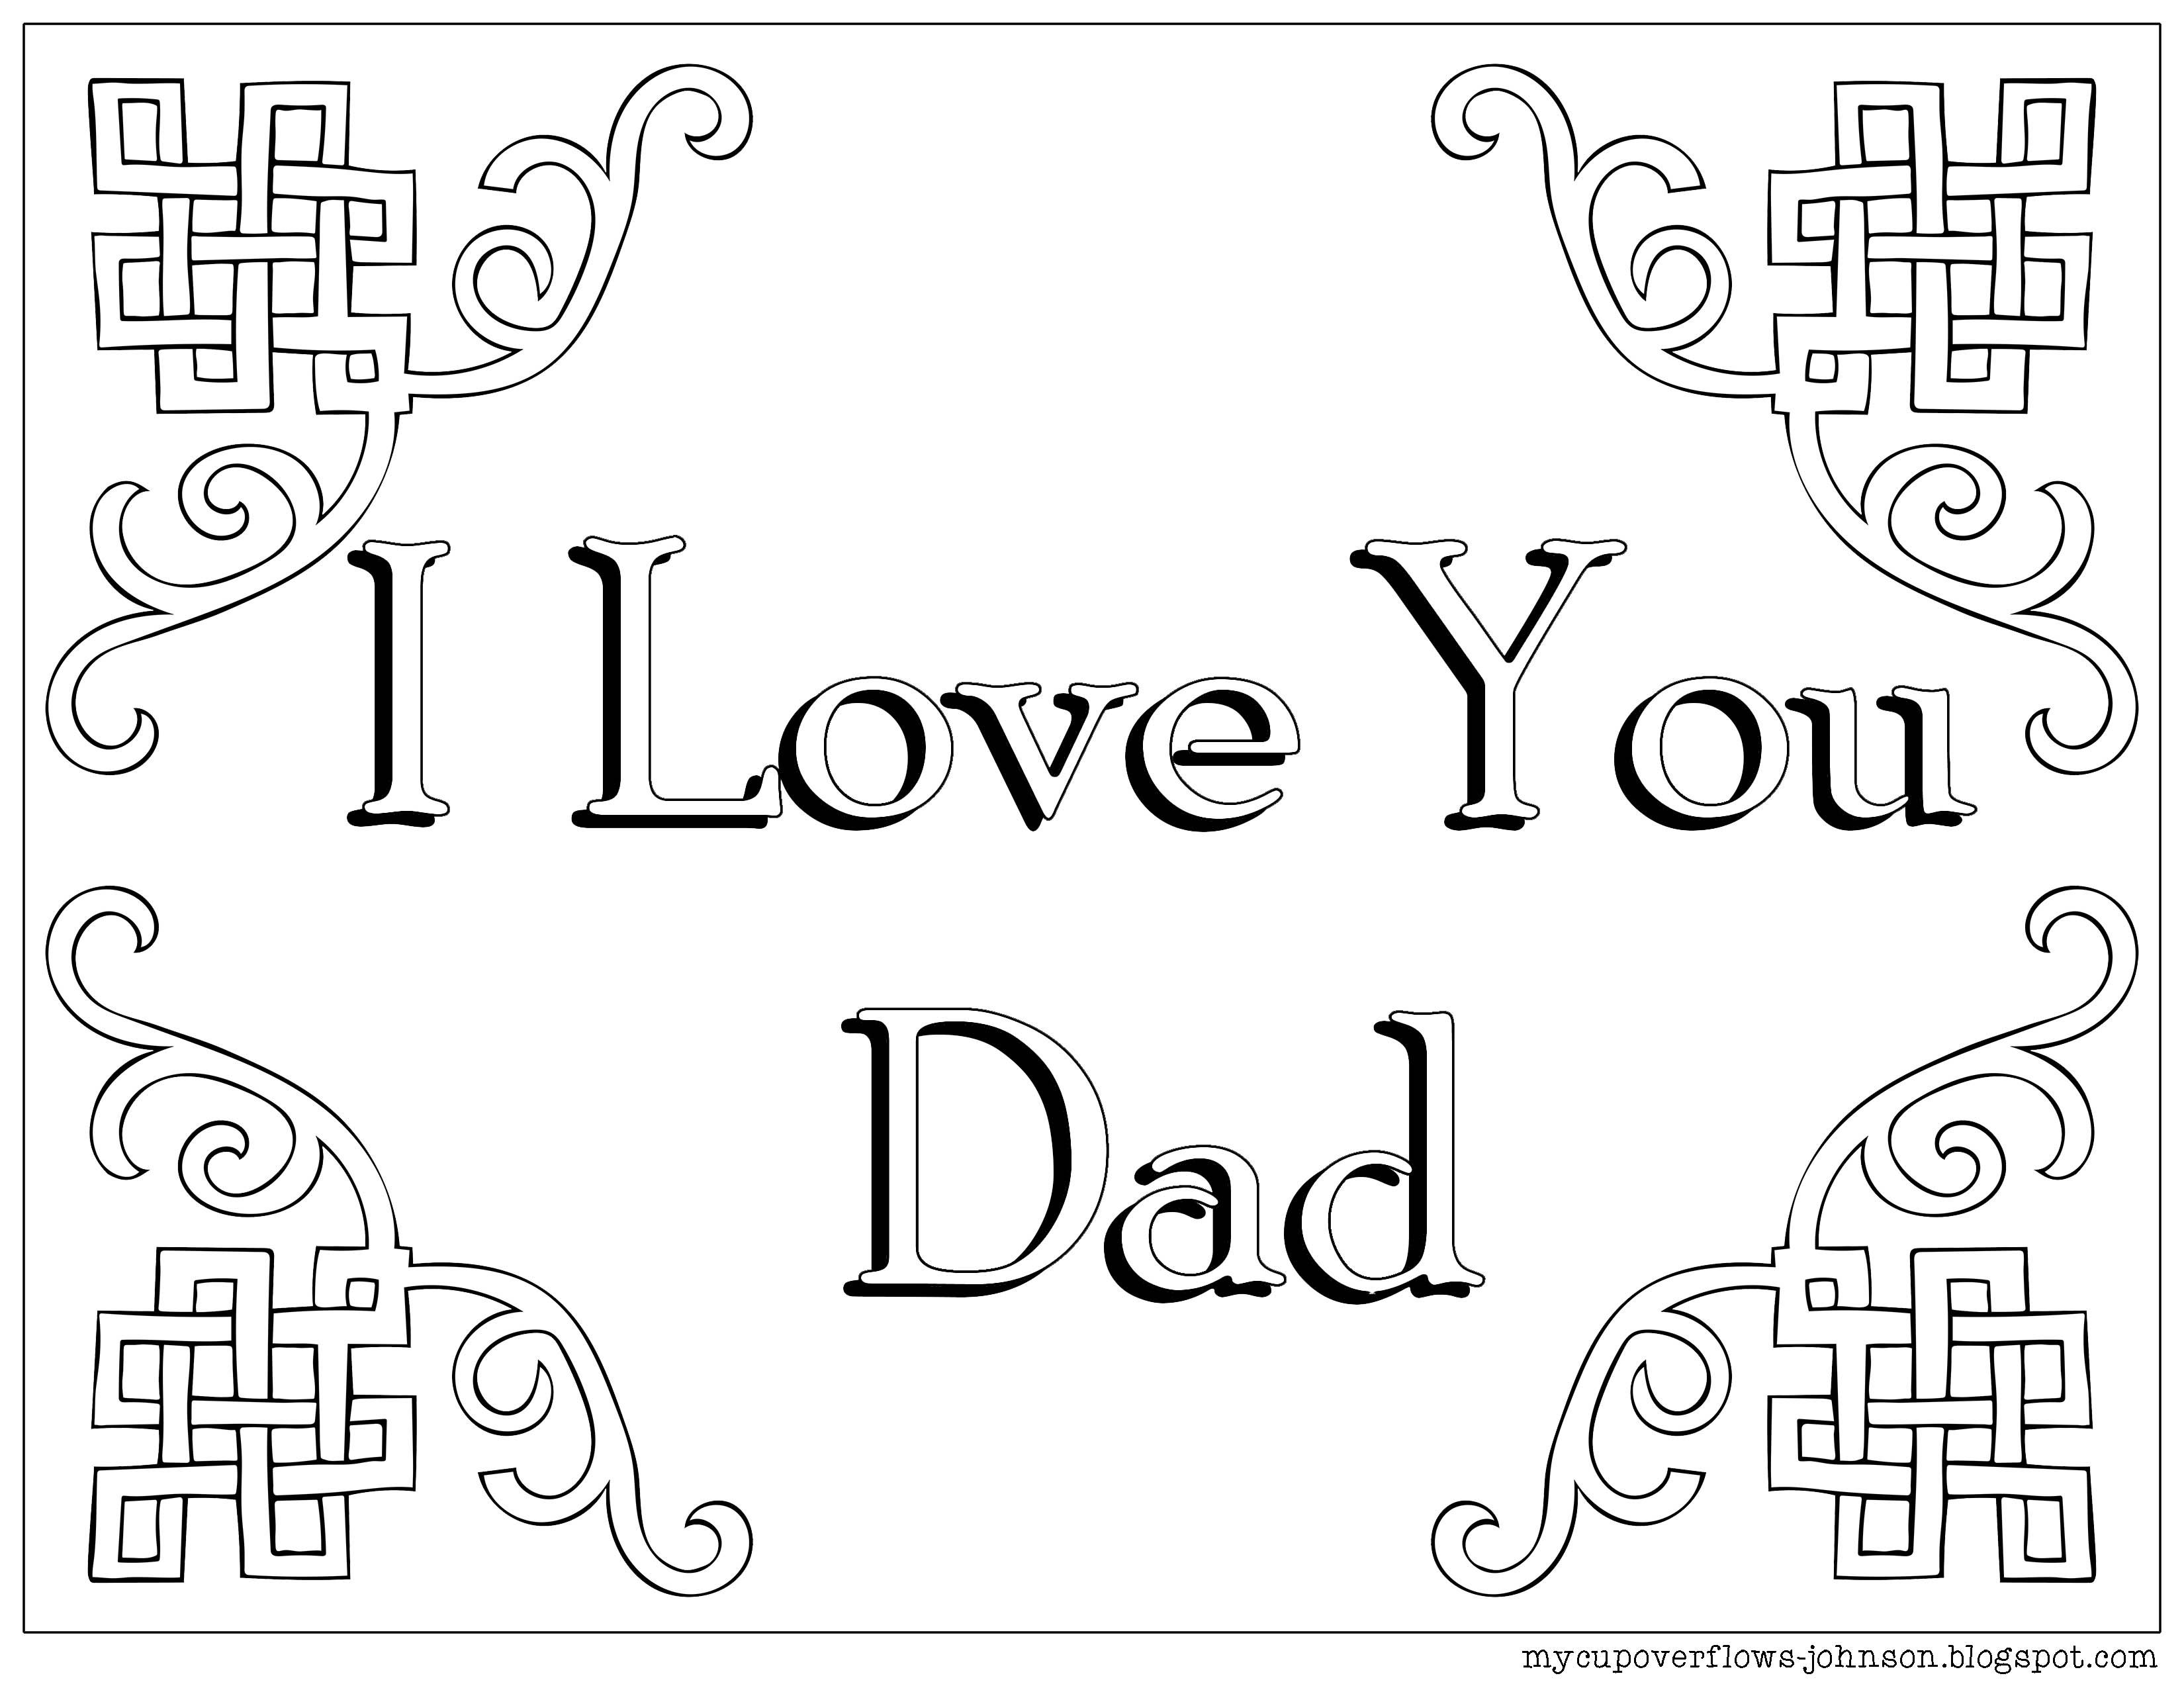 I Love You Dad Coloring Pages For Kids | Fathers day coloring page ... | 2550x3300